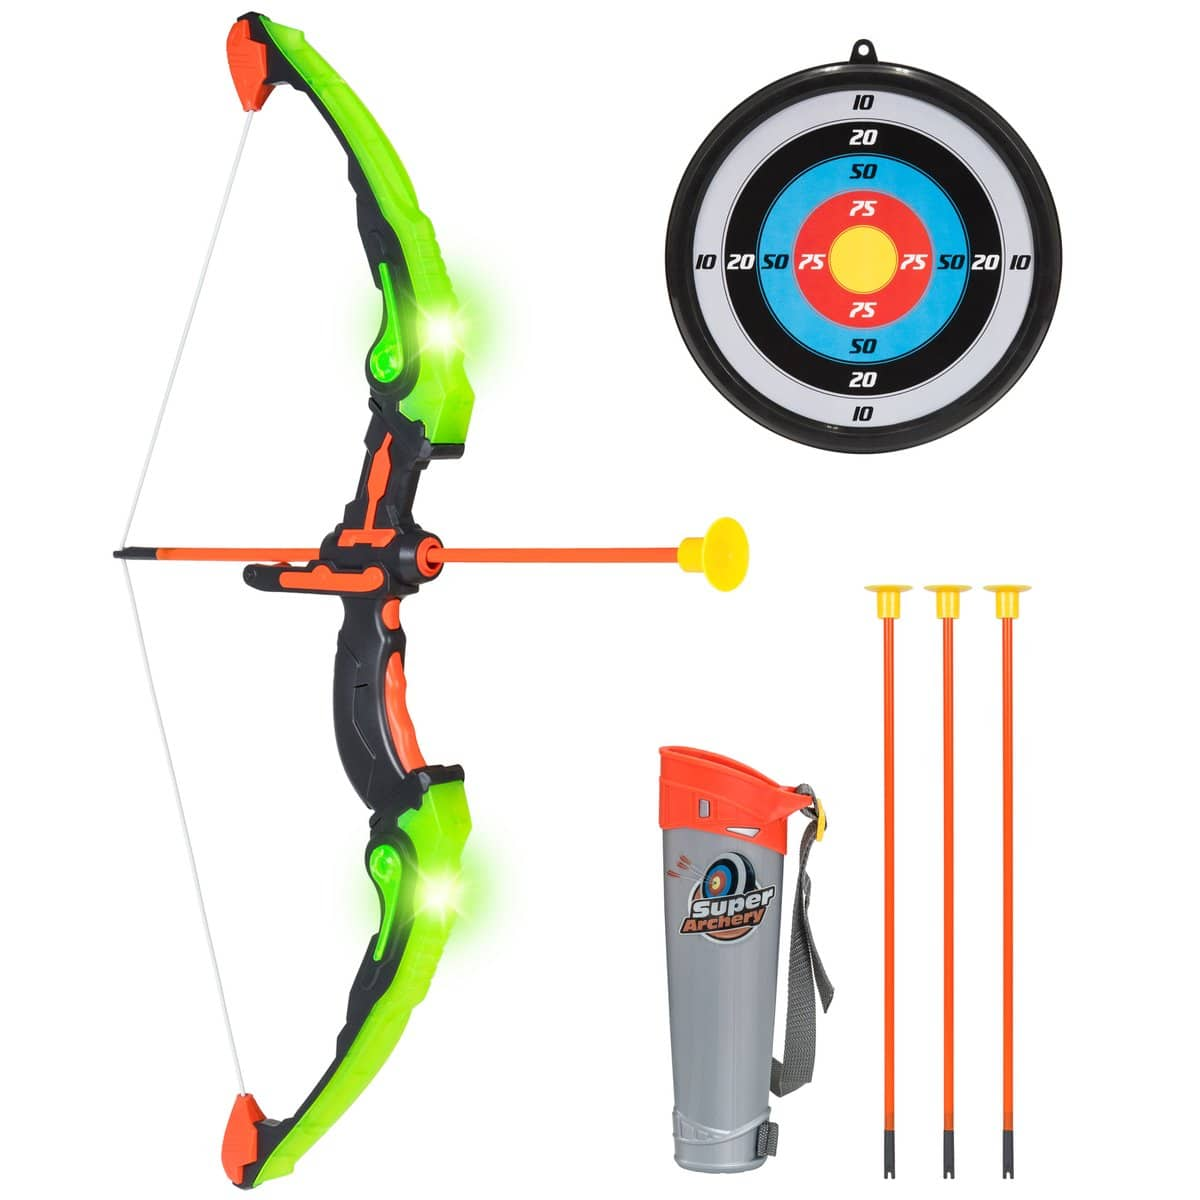 Kids 24in Light-Up Archery Toy Play Set w/ Bow, 3 Arrows, Quiver, Target $18.99